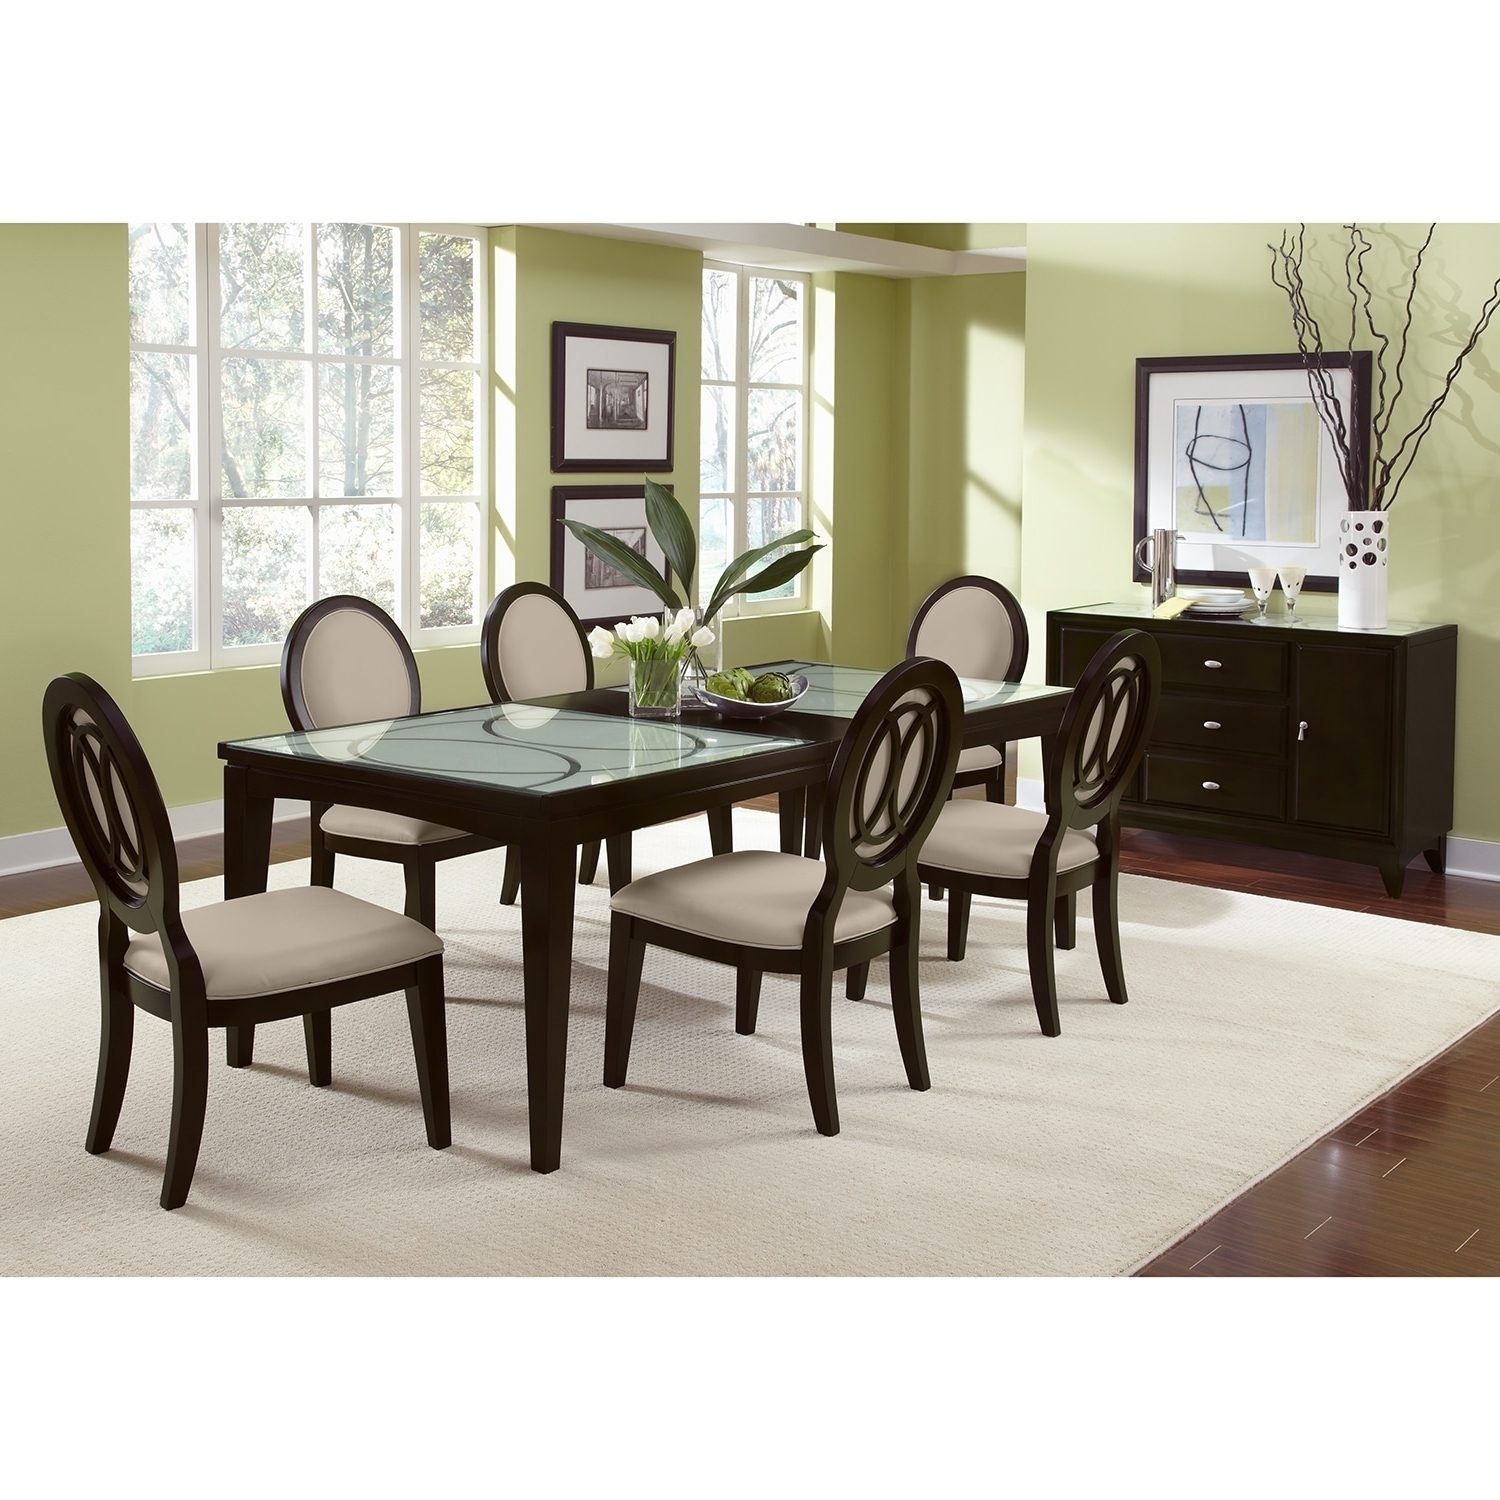 Well Liked Shop 7 Piece Dining Room Sets (View 25 of 25)